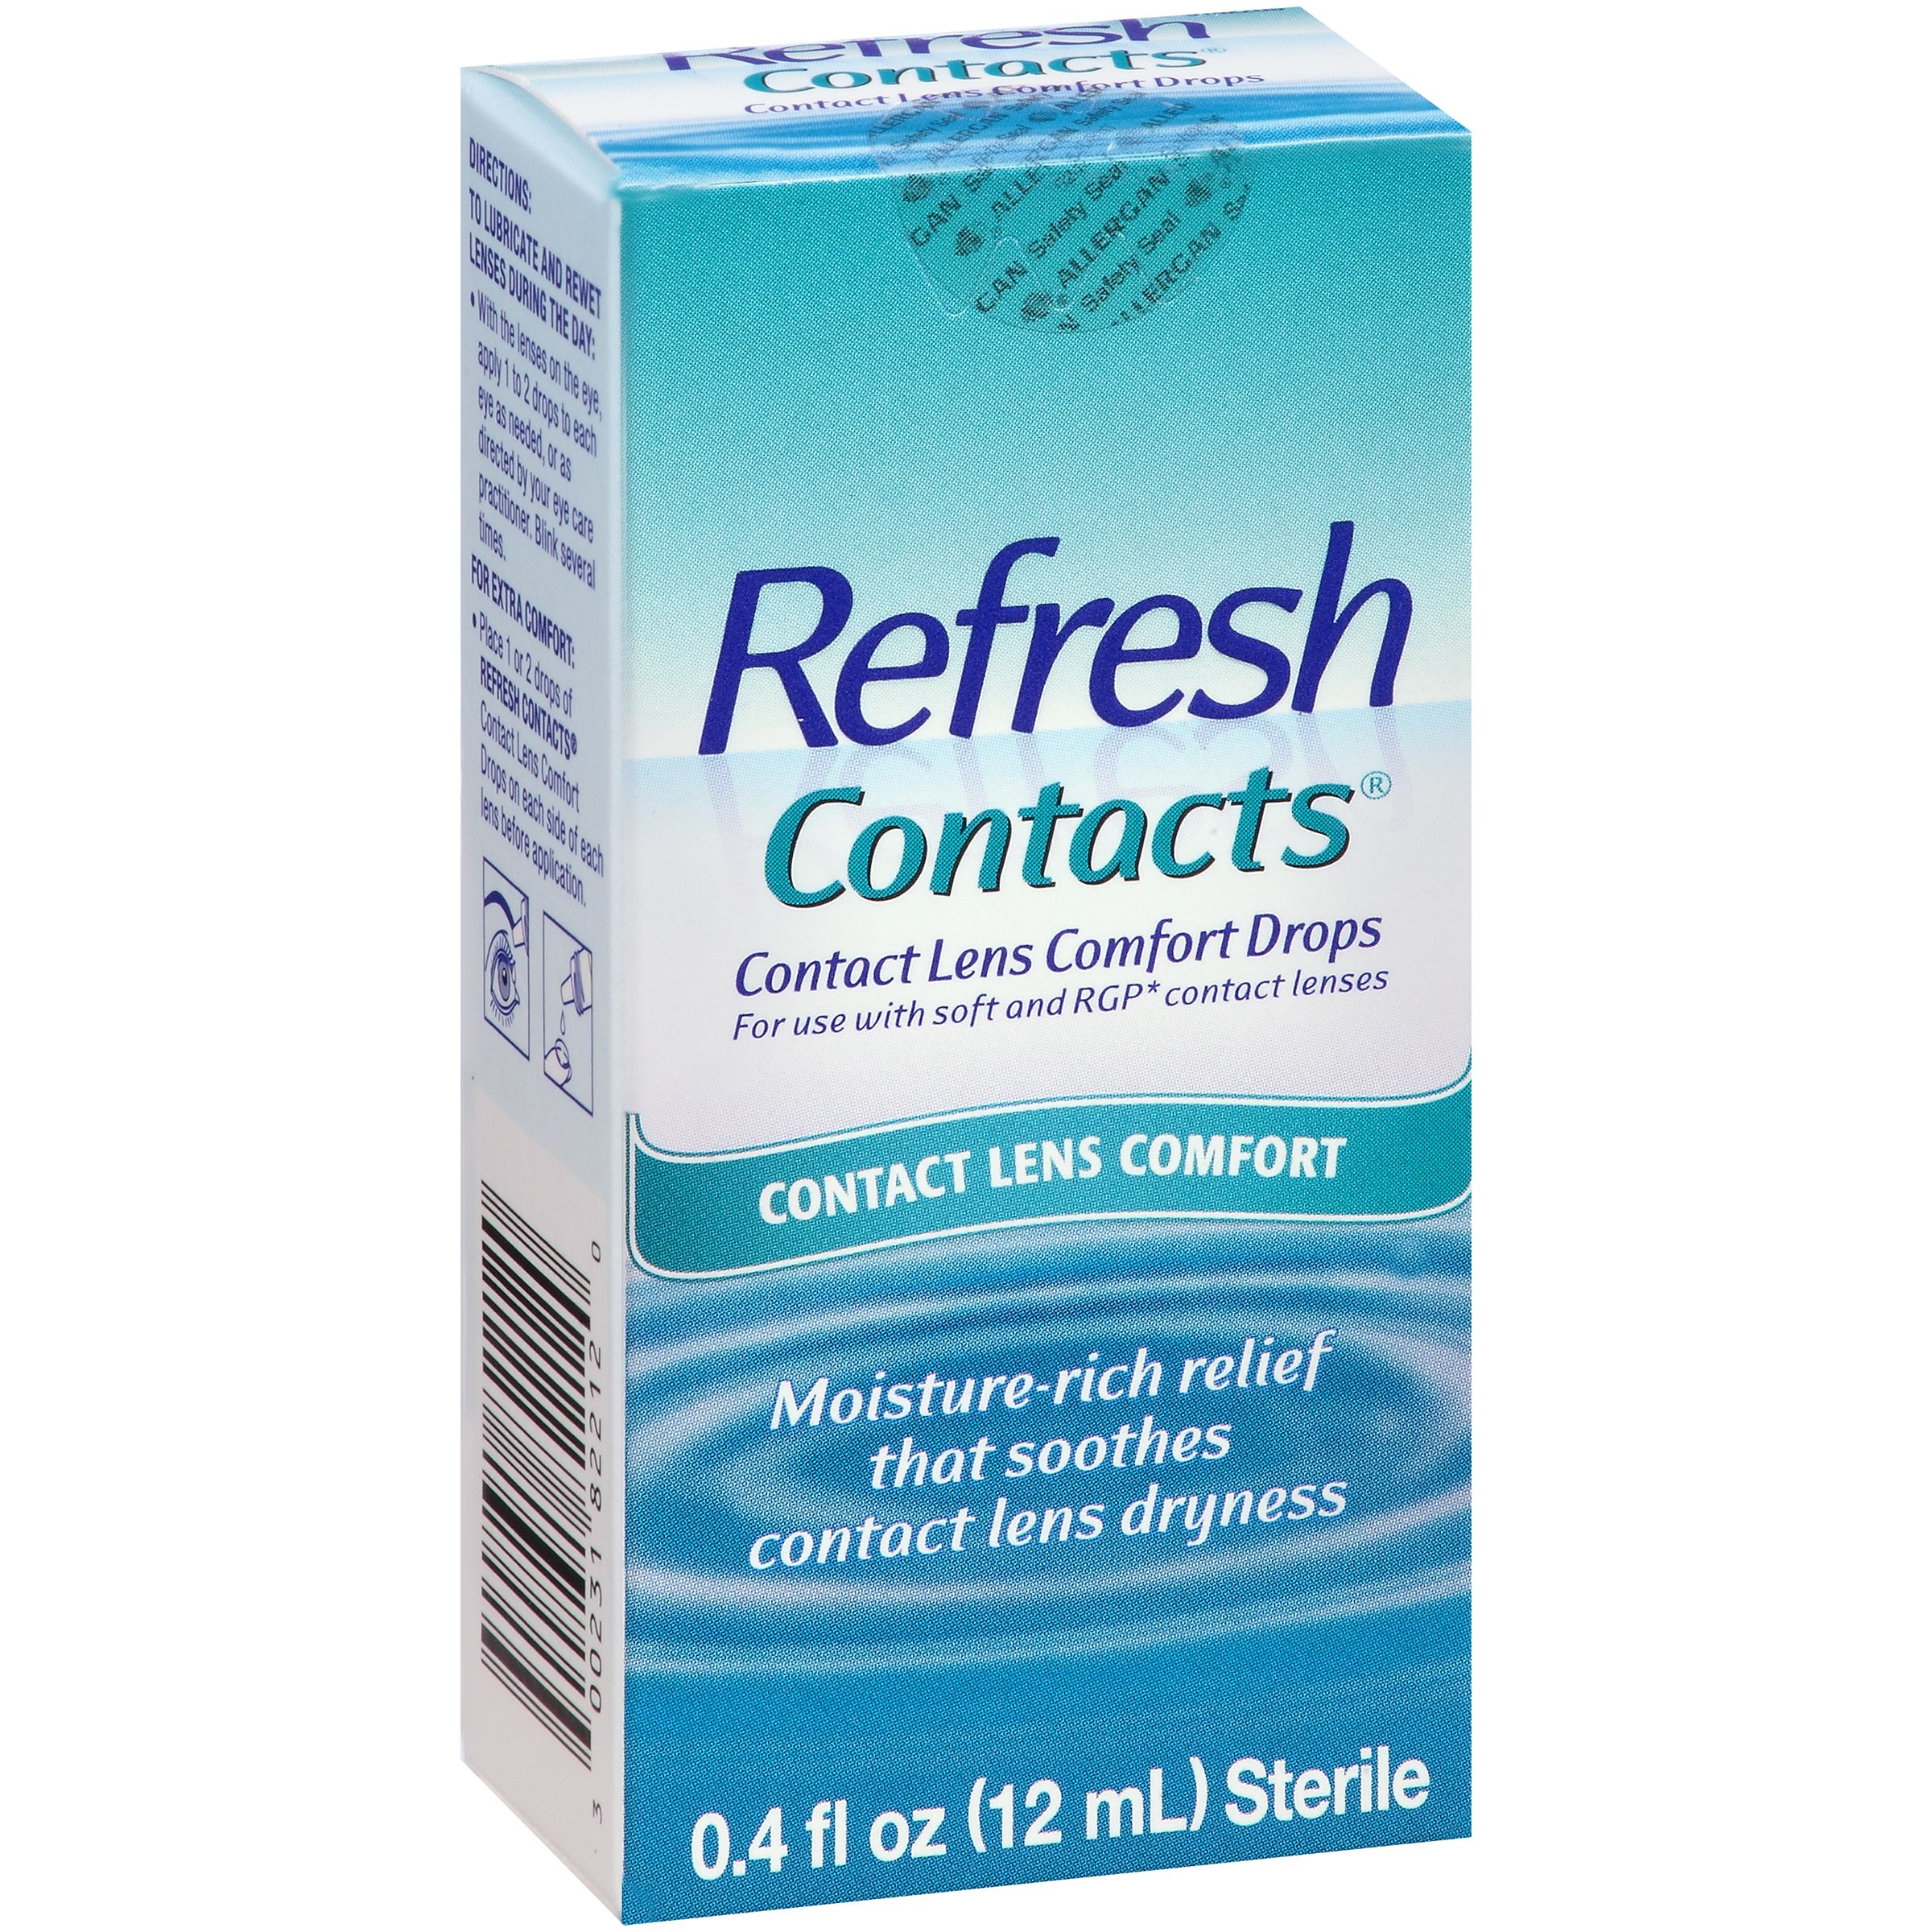 Refresh Contacts® Contact Lens Comfort Eye Drops 0.4 fl. oz. Box